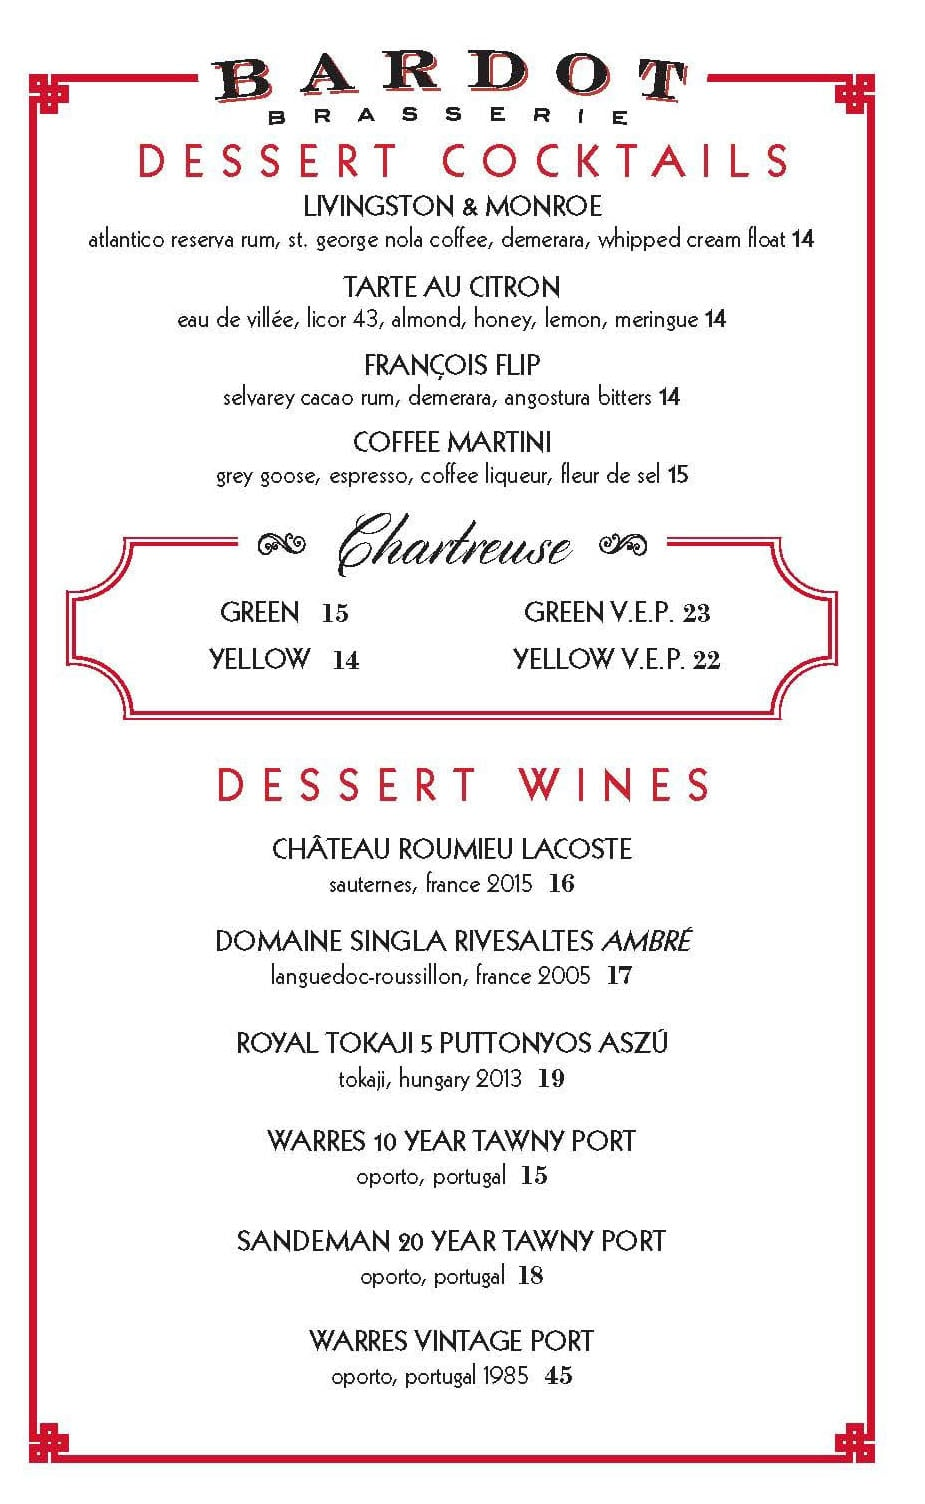 Bardot Brasserie dinner menu - dessert cocktails